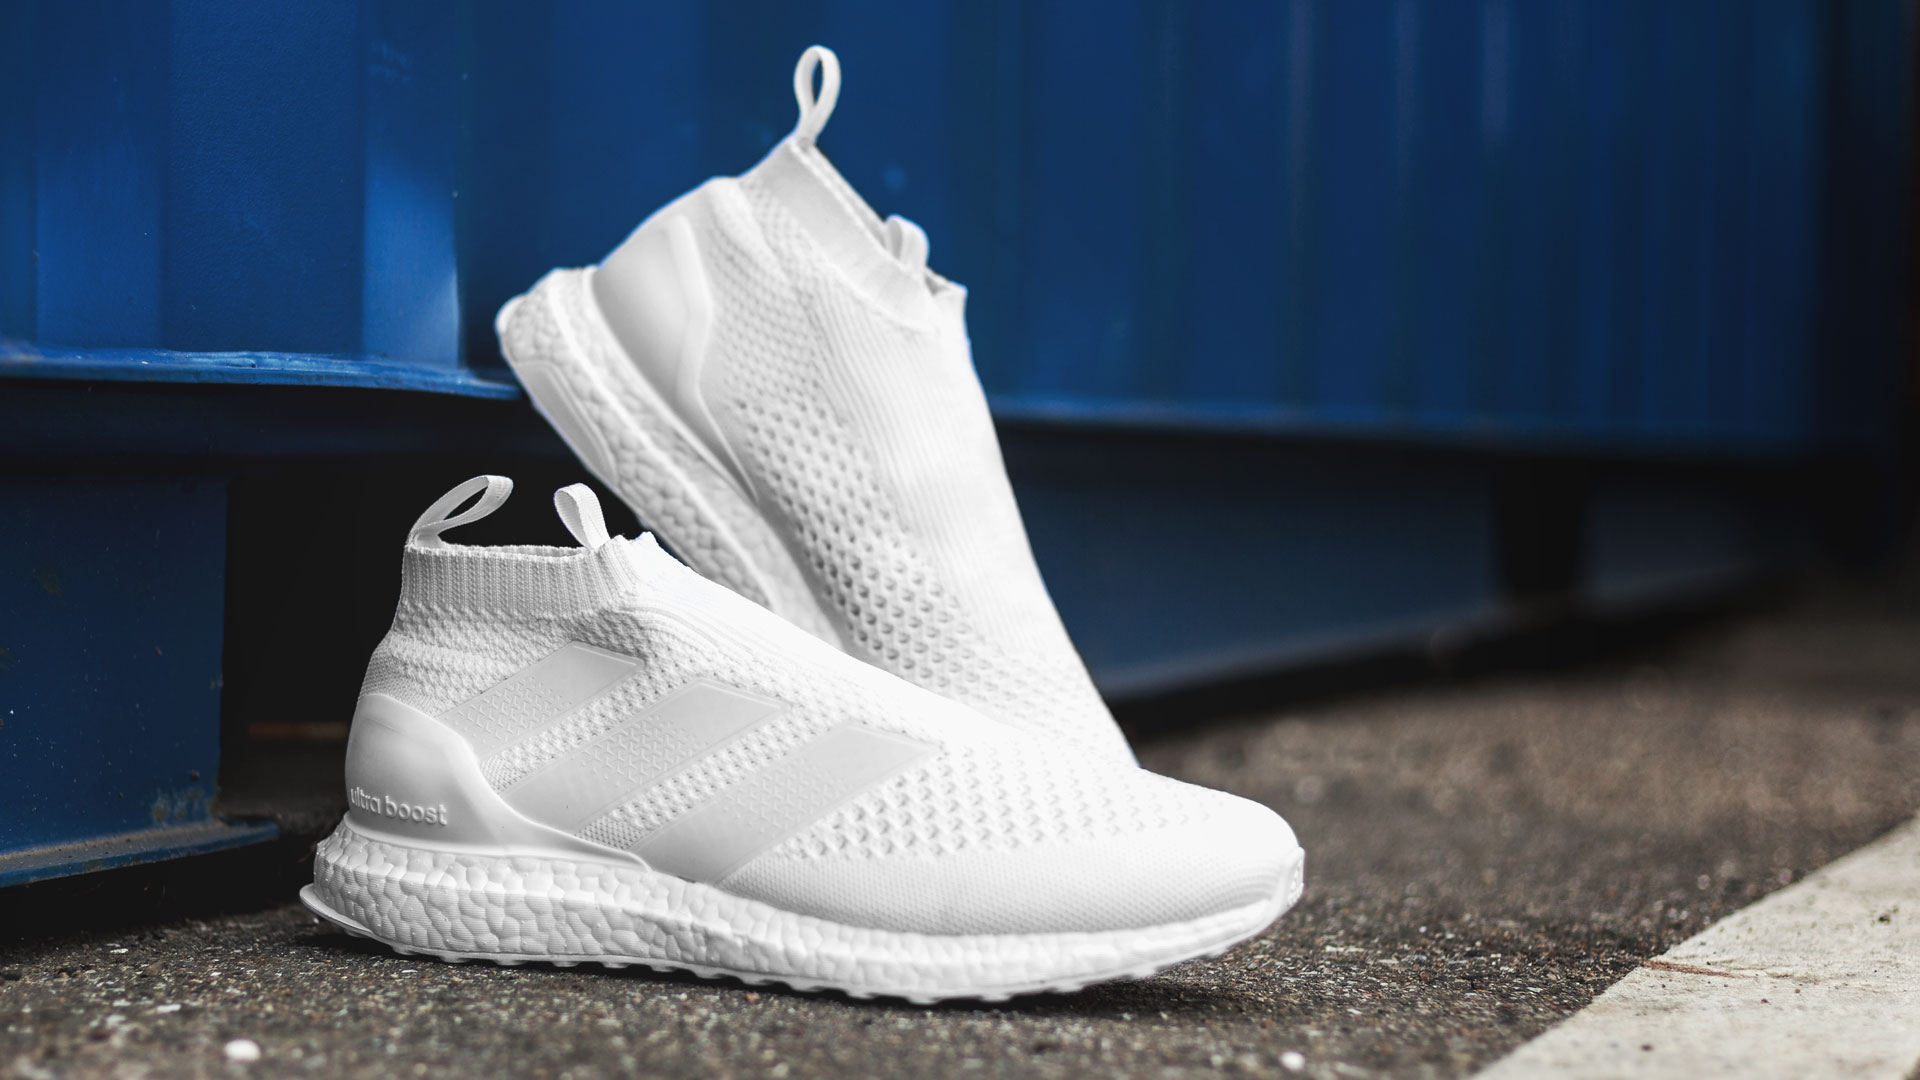 Der heilige Gral | Triple white PureControl Ultra Boost |